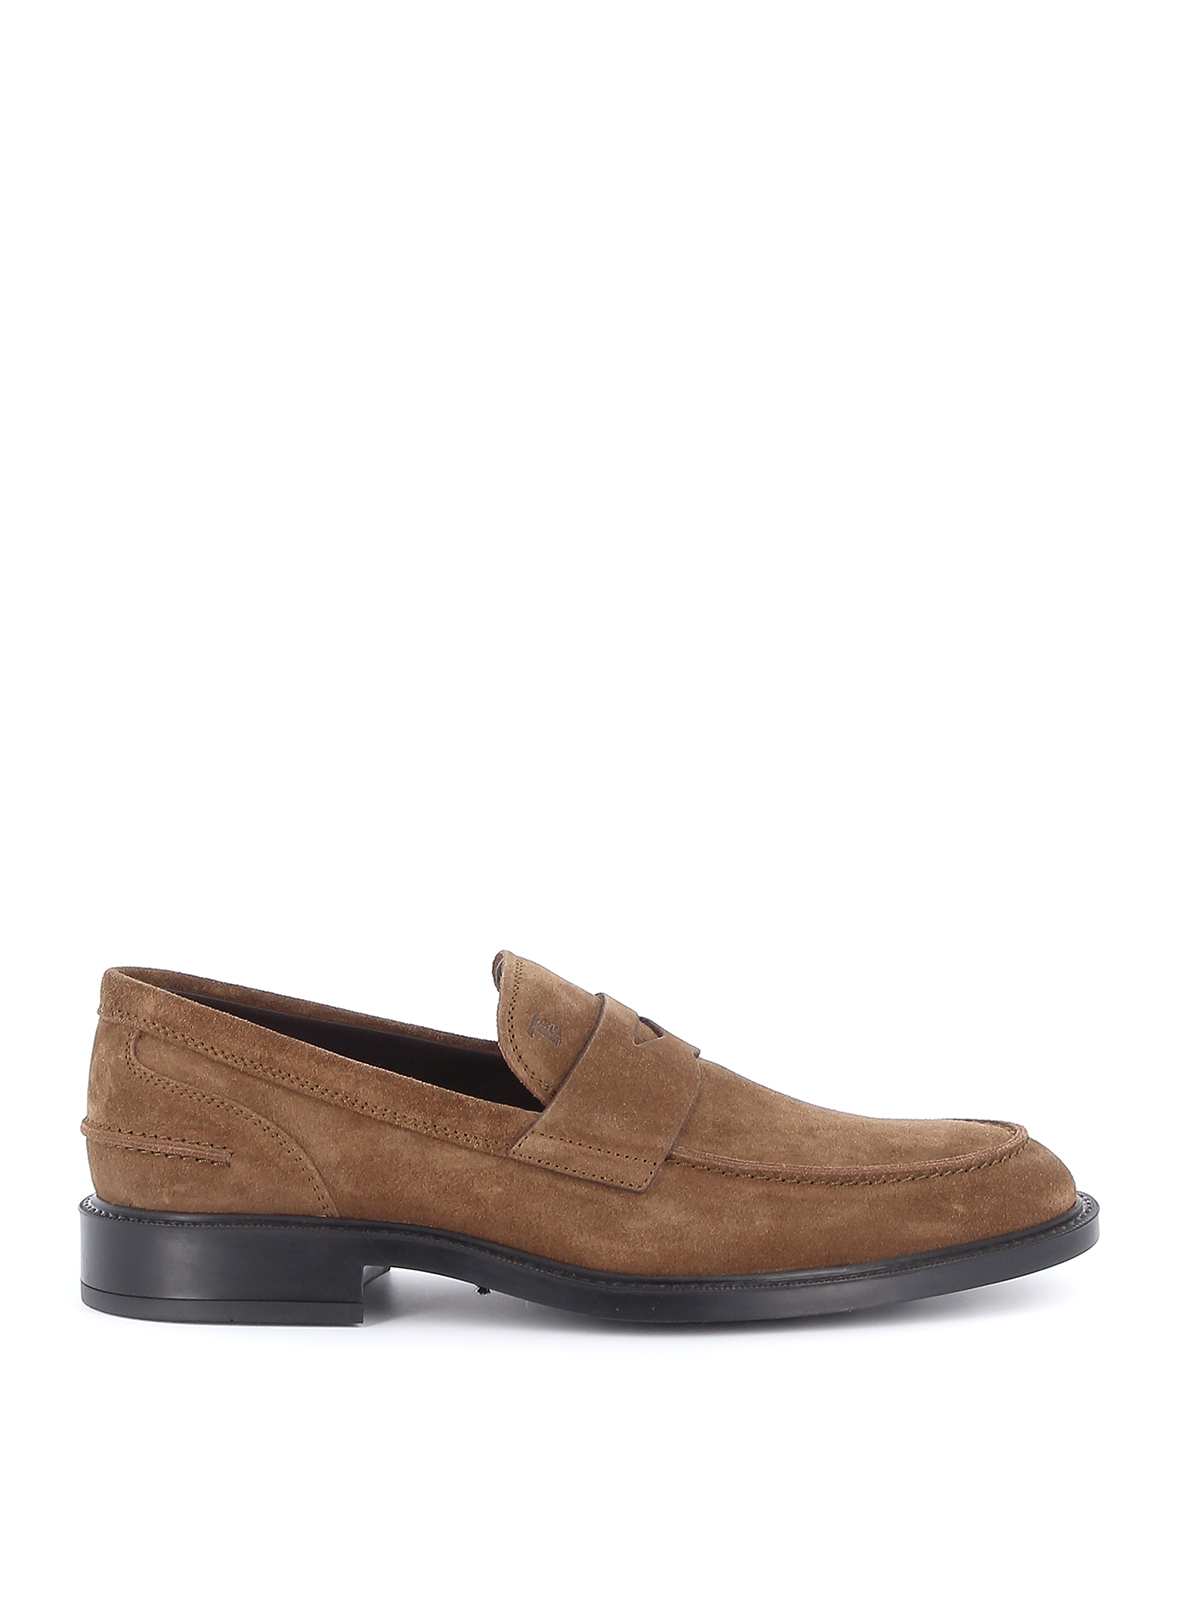 Suede loafers in beige TOD